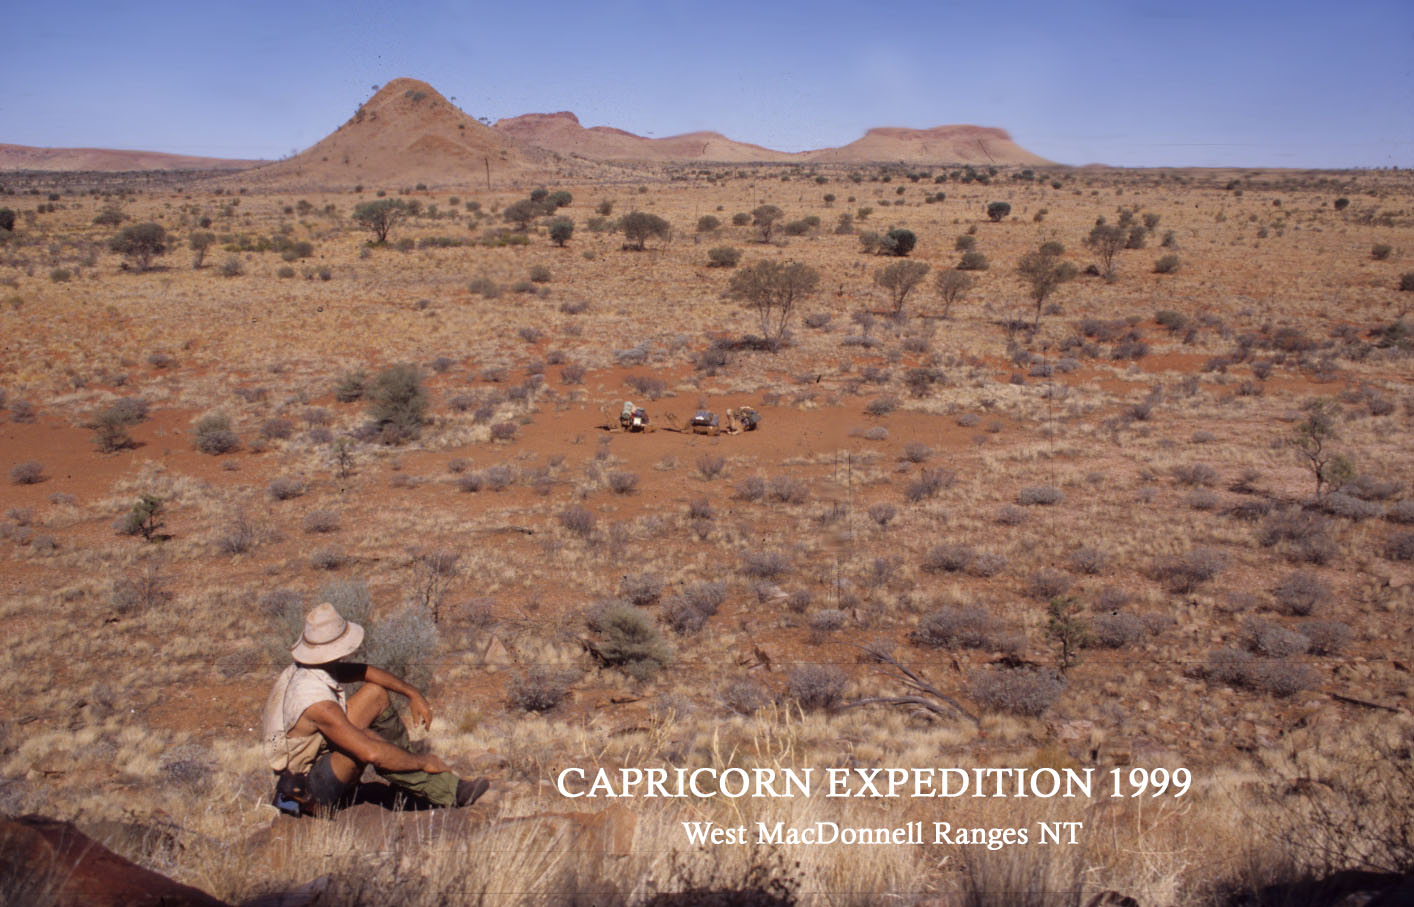 MacDonnell Ranges, NT.